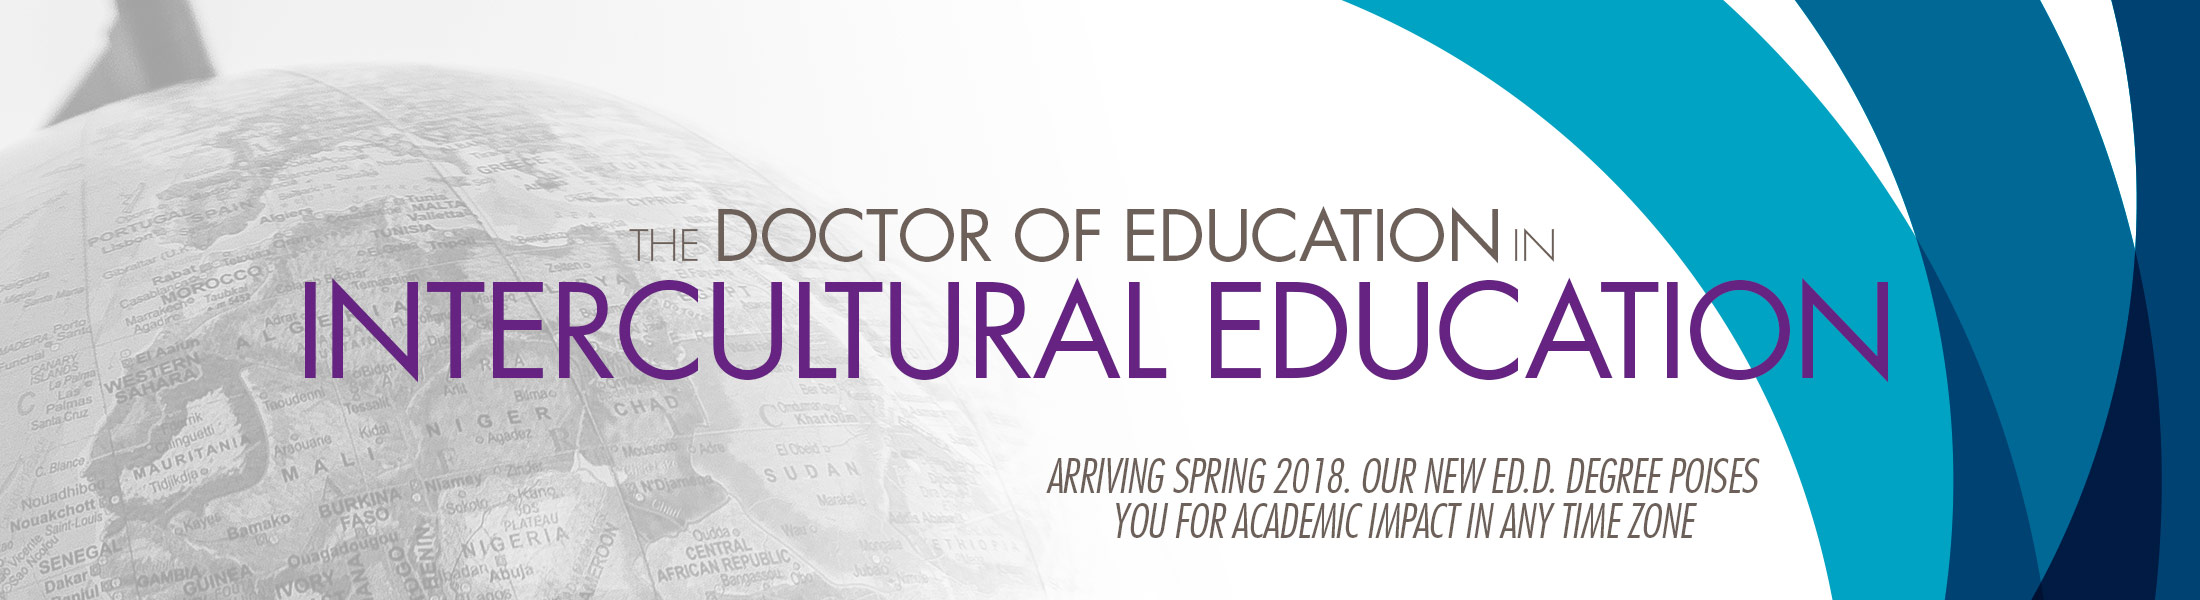 Doctor of Education in Intercultural Education (Ed.D.)